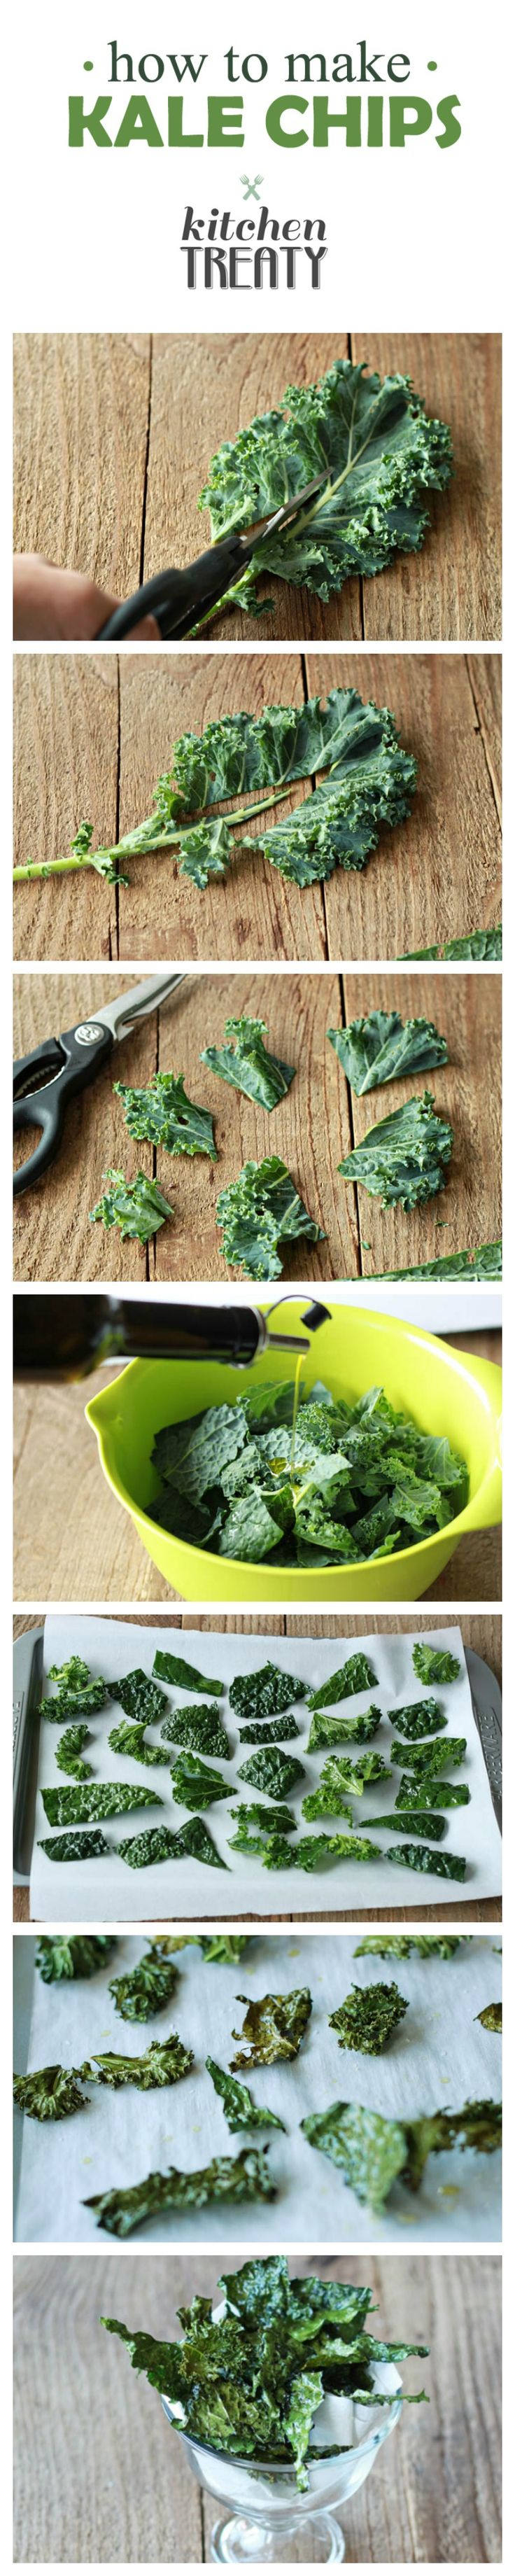 nike patch release How to Make Kale Chips   Salty  crispy  addicting  and from garden to oven in 15 minutes     making your own kale chips couldn  39 t be easier